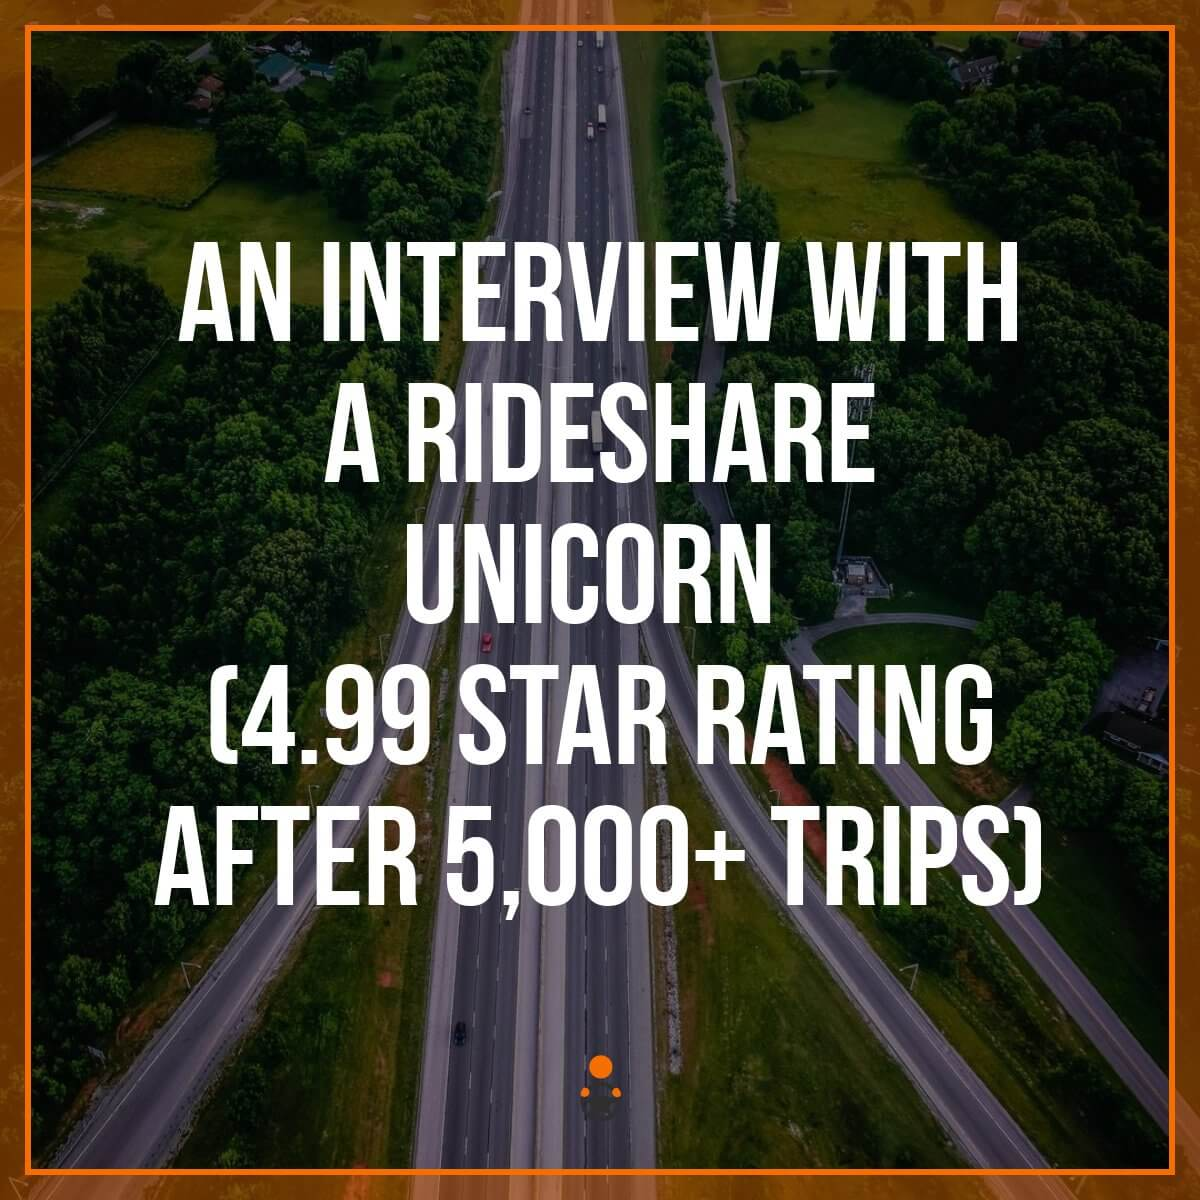 Have you wondered how some drivers can maintain a 4.9 or even 5-star rating after thousands of trips? How do they make it look so easy? In this episode, we're talking with one of those unicorn drivers, a driver with a 4.99 star rating, who's given over 5,000 rides. We'll discuss how he maintained such a high rating, and his secrets for getting five-stars every time.